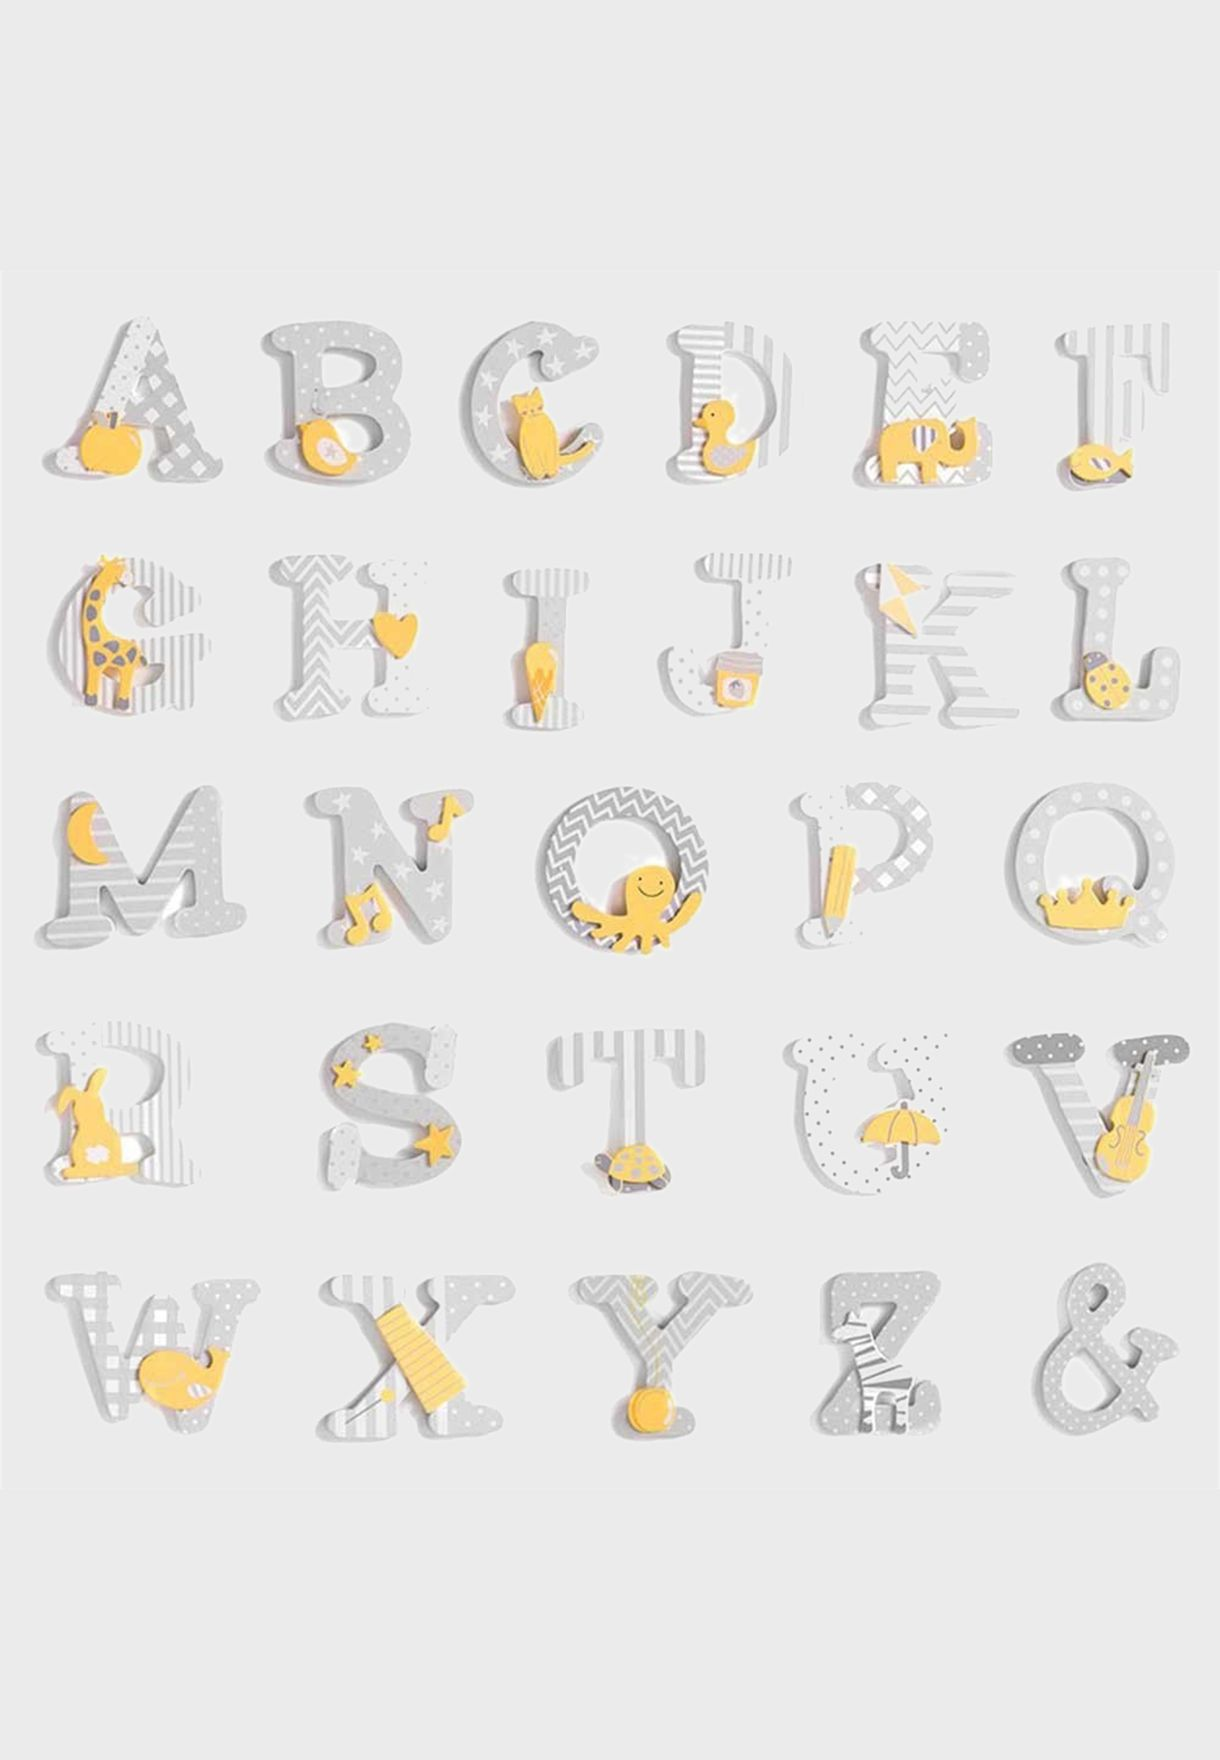 Initial & Wooden Letter